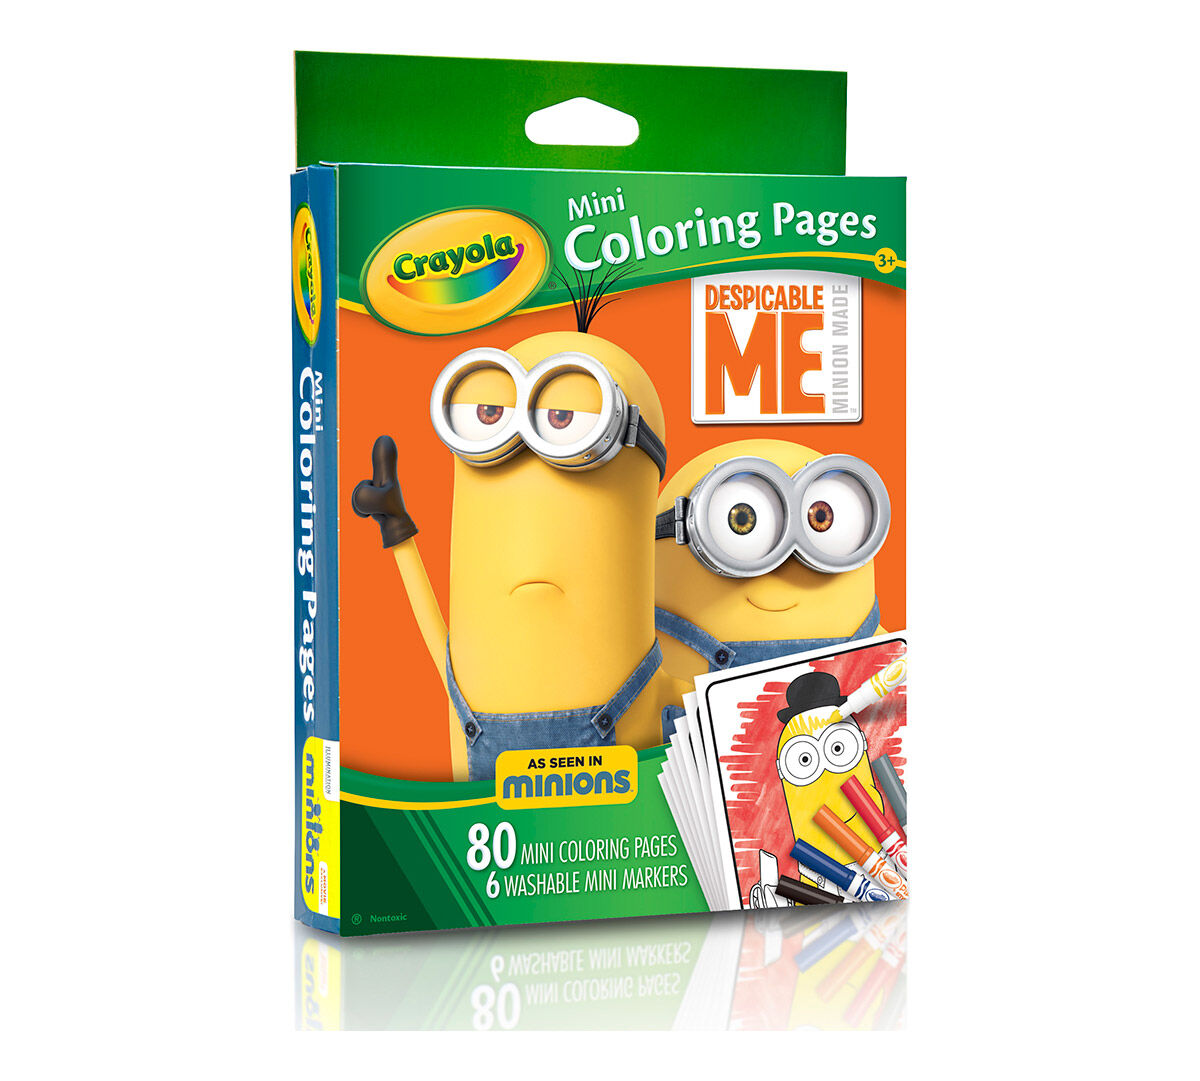 Crayola Mini Coloring Pages Despicable Me edition Art Activity